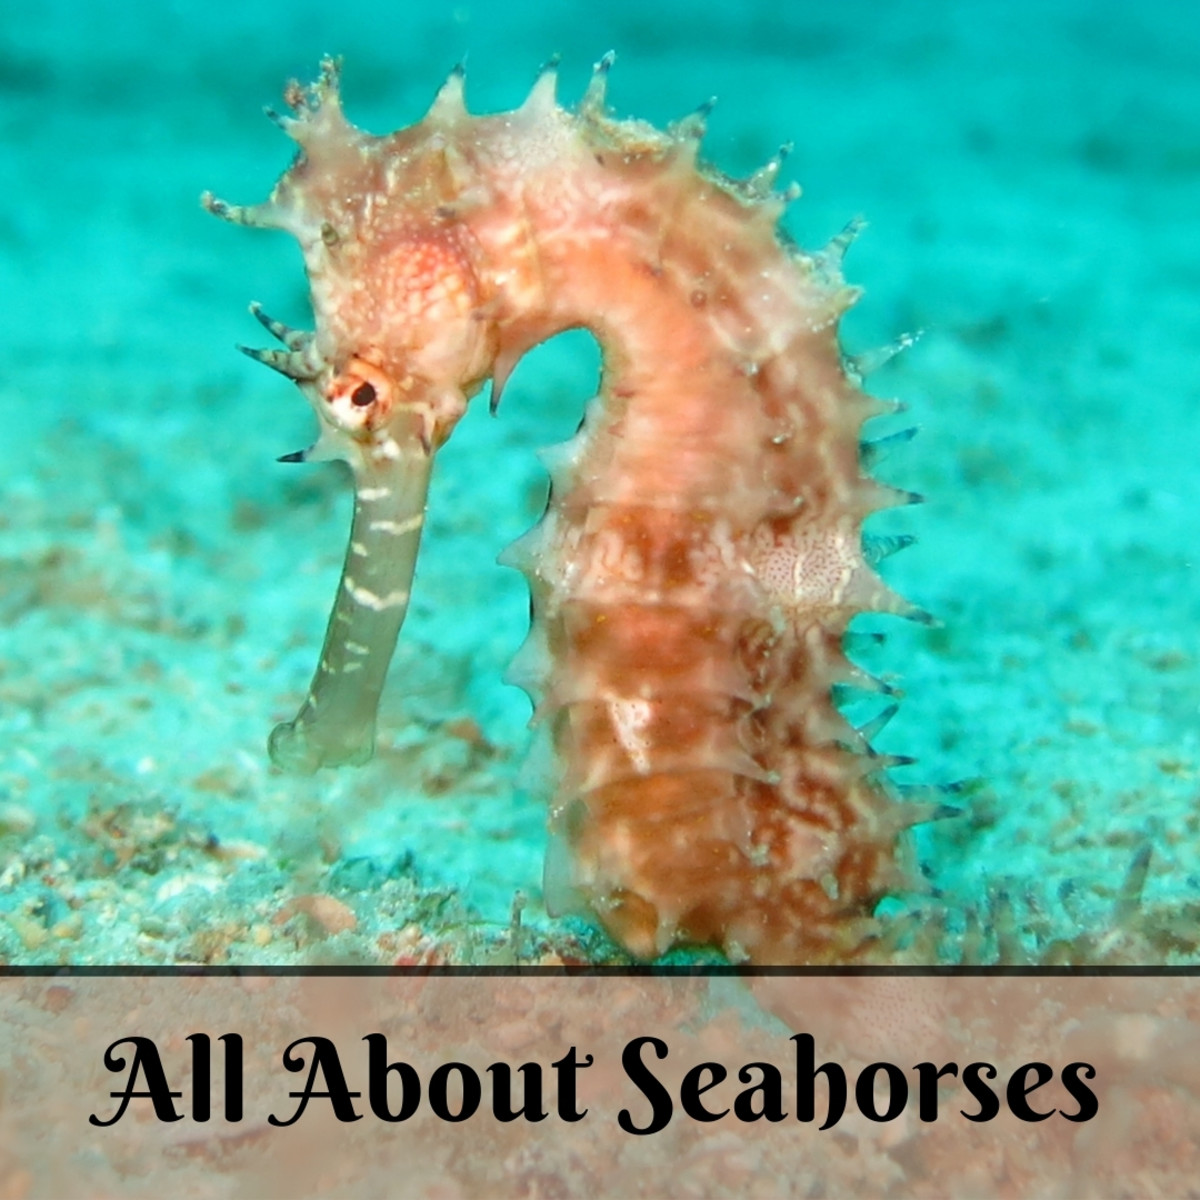 Facts about seahorses and a guide to caring for them